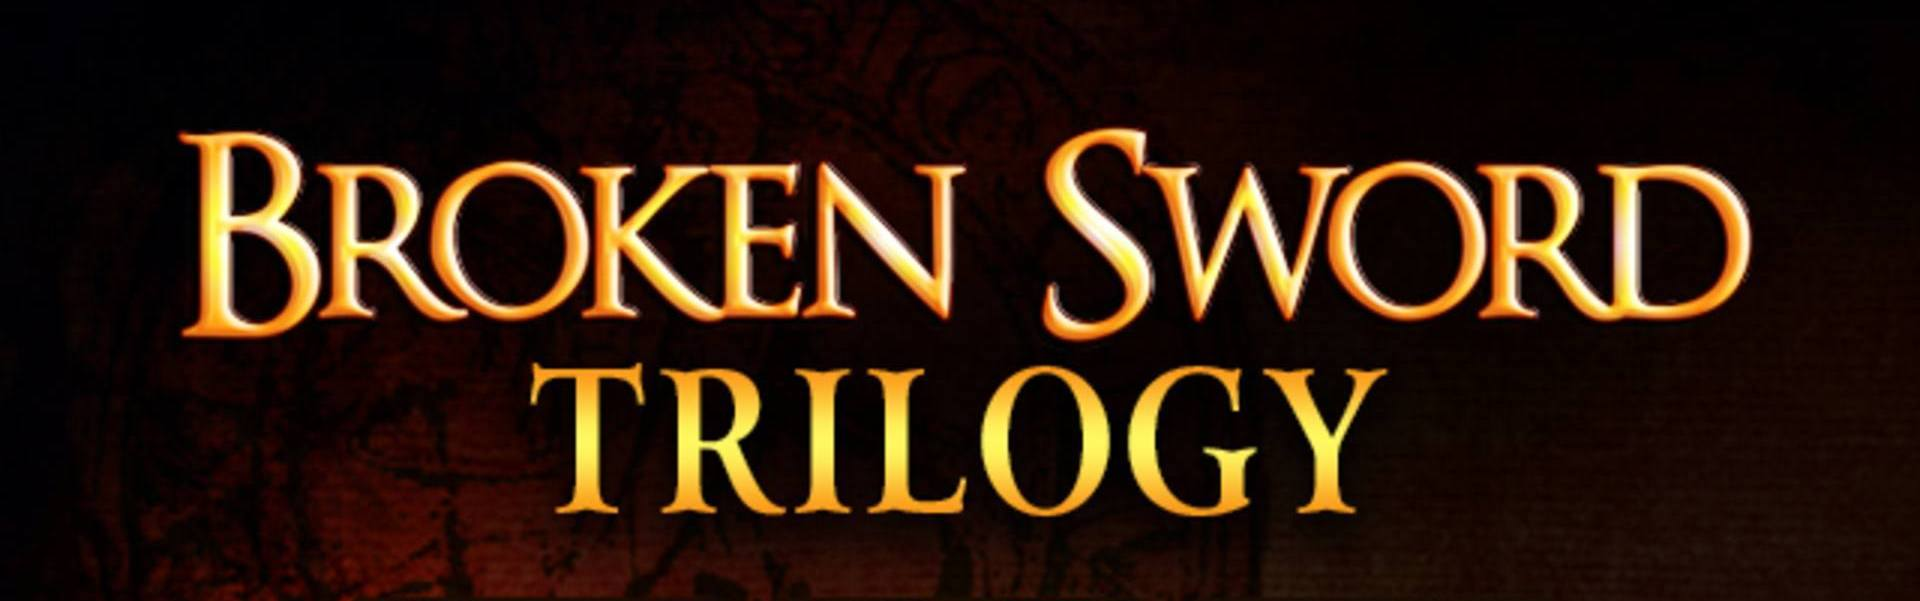 Broken Sword Trilogy Steam Key GLOBAL